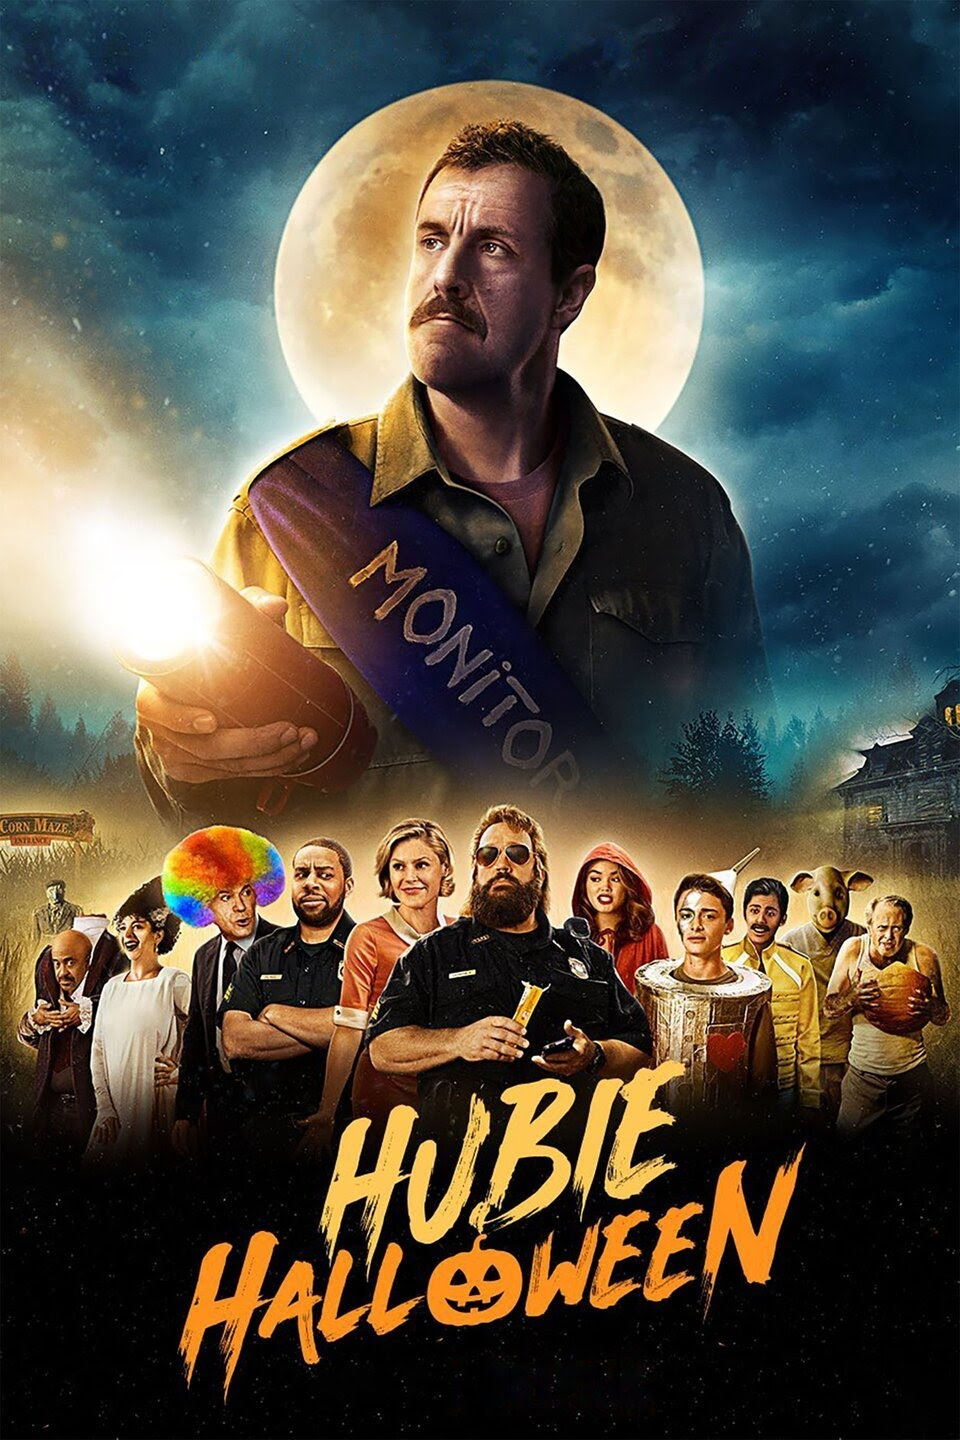 Hubie Halloween (2020) Full Movie In Hindi-English (Dual Audio) WEB-DL 480p | 720p | 1080p